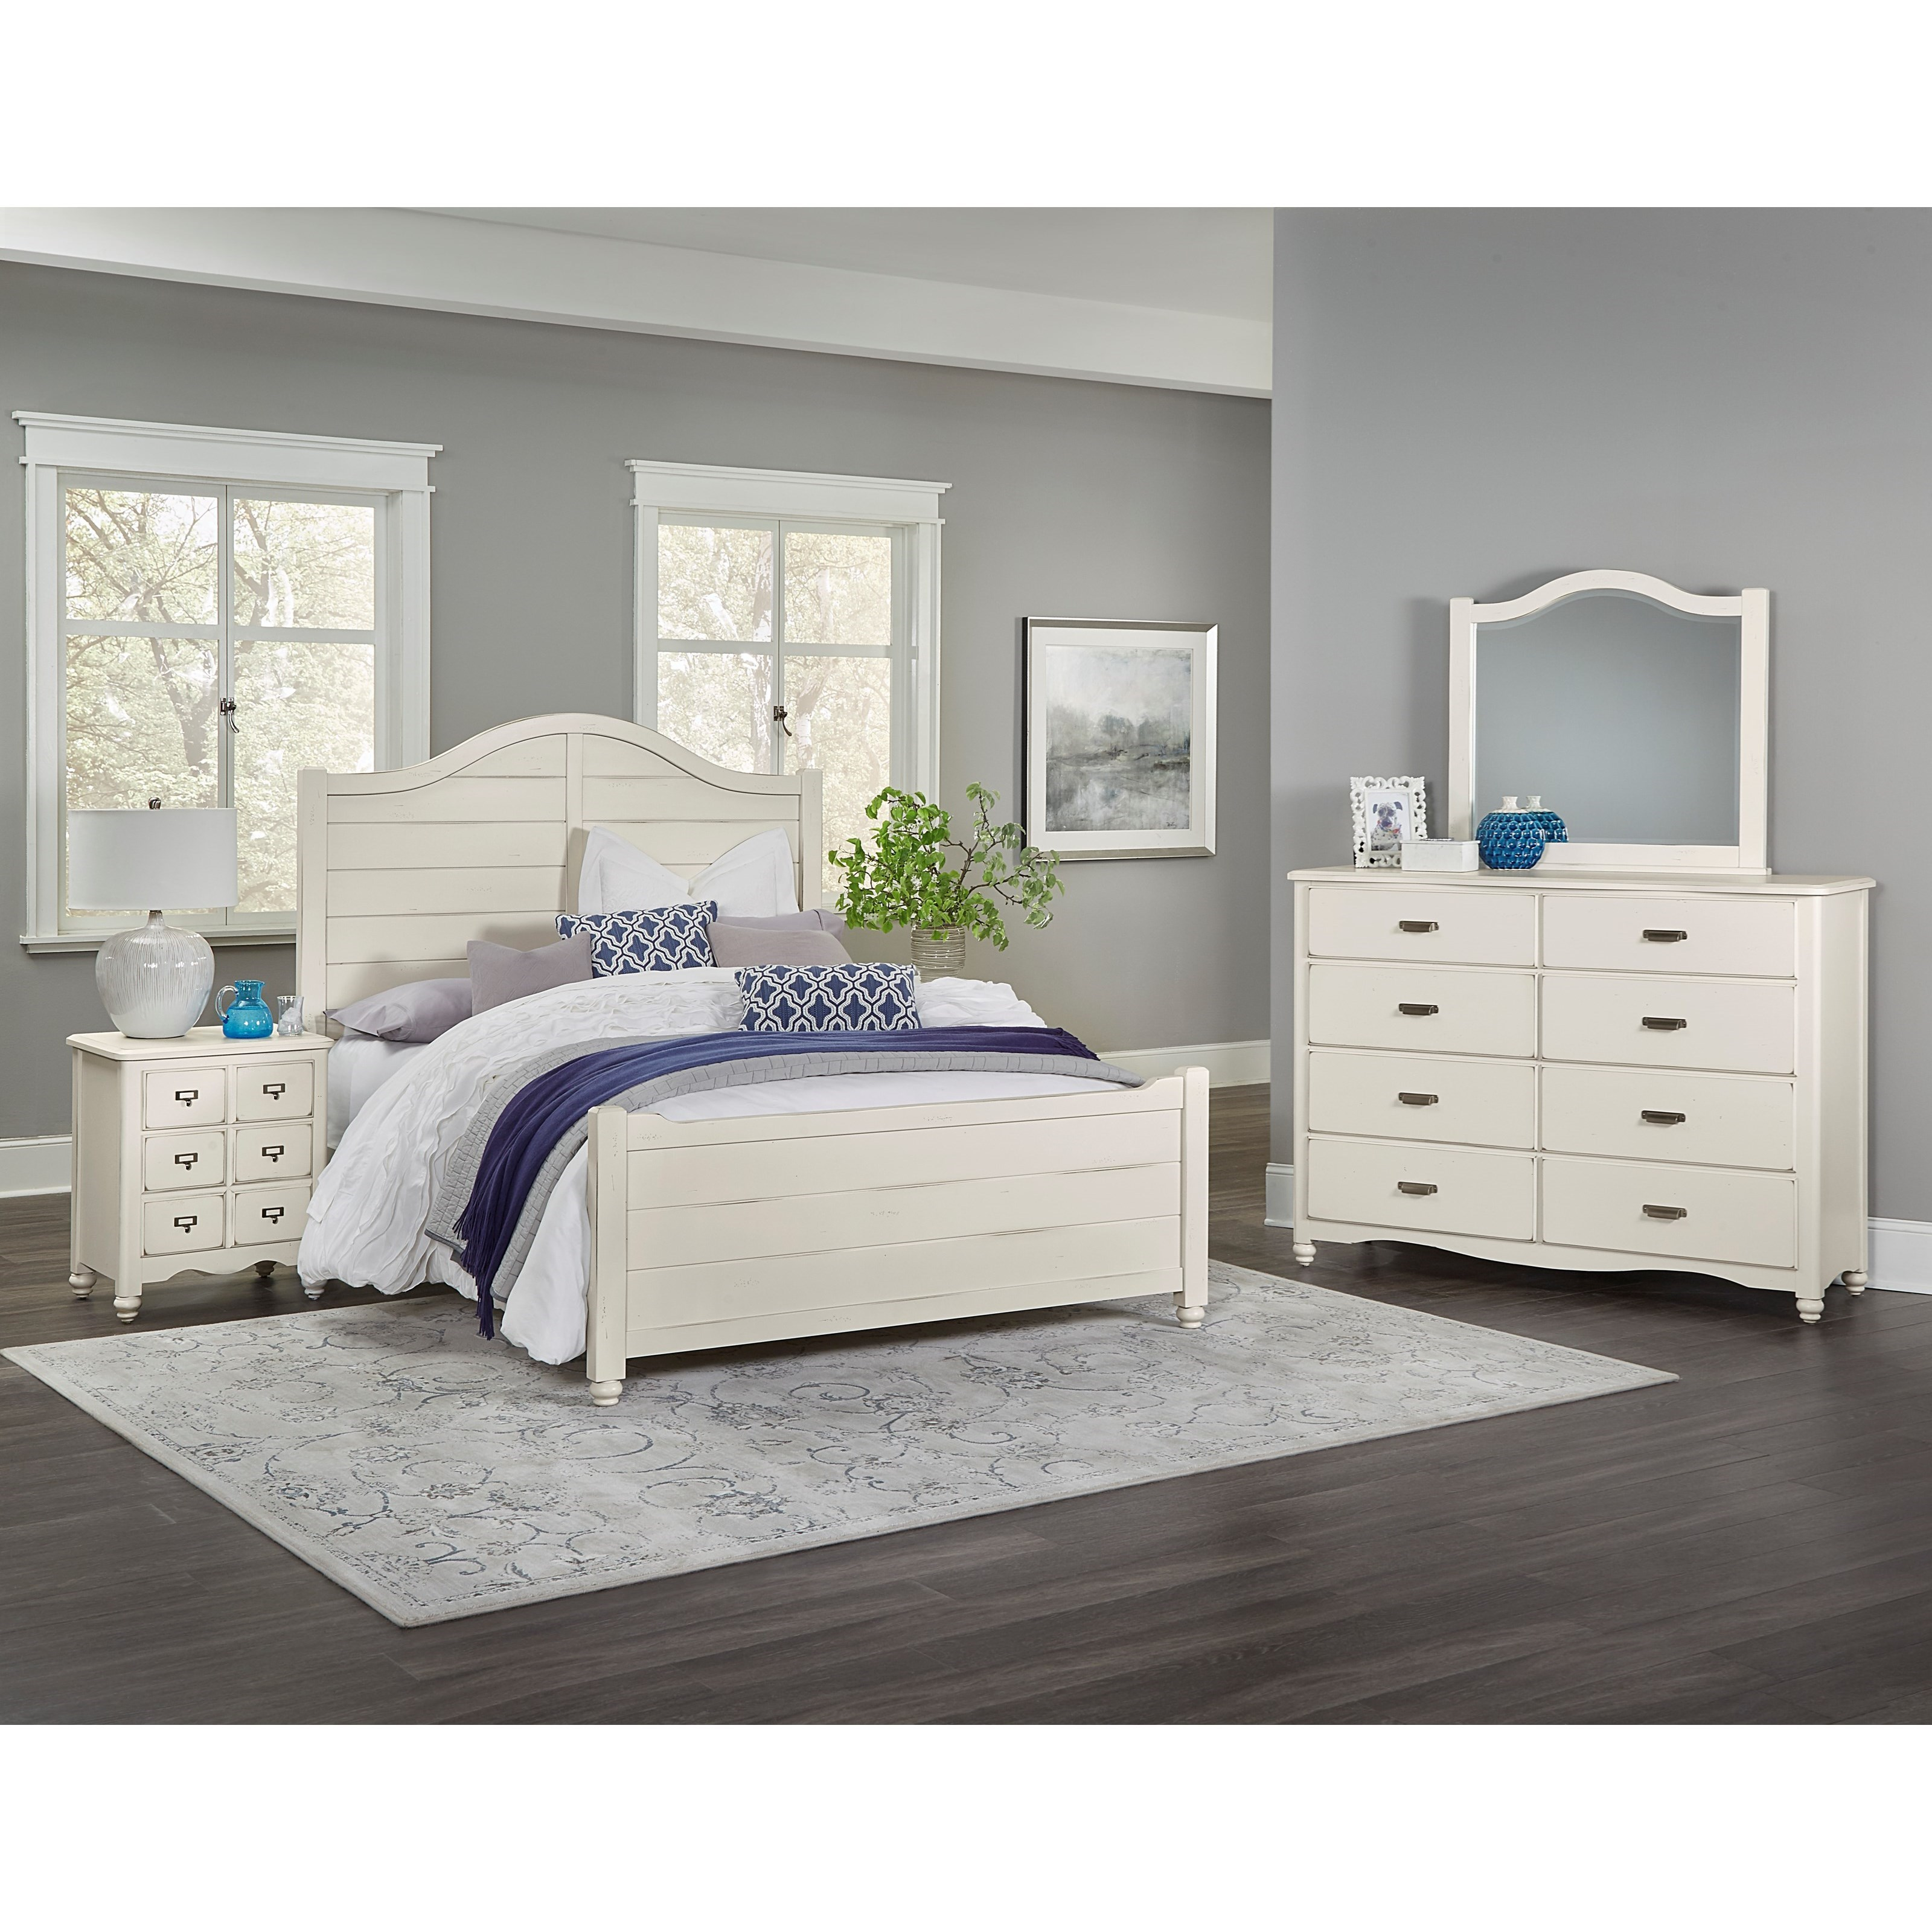 Vaughan Bassett American Maple King Bedroom Group - Item Number: 404 K Bedroom Group 2